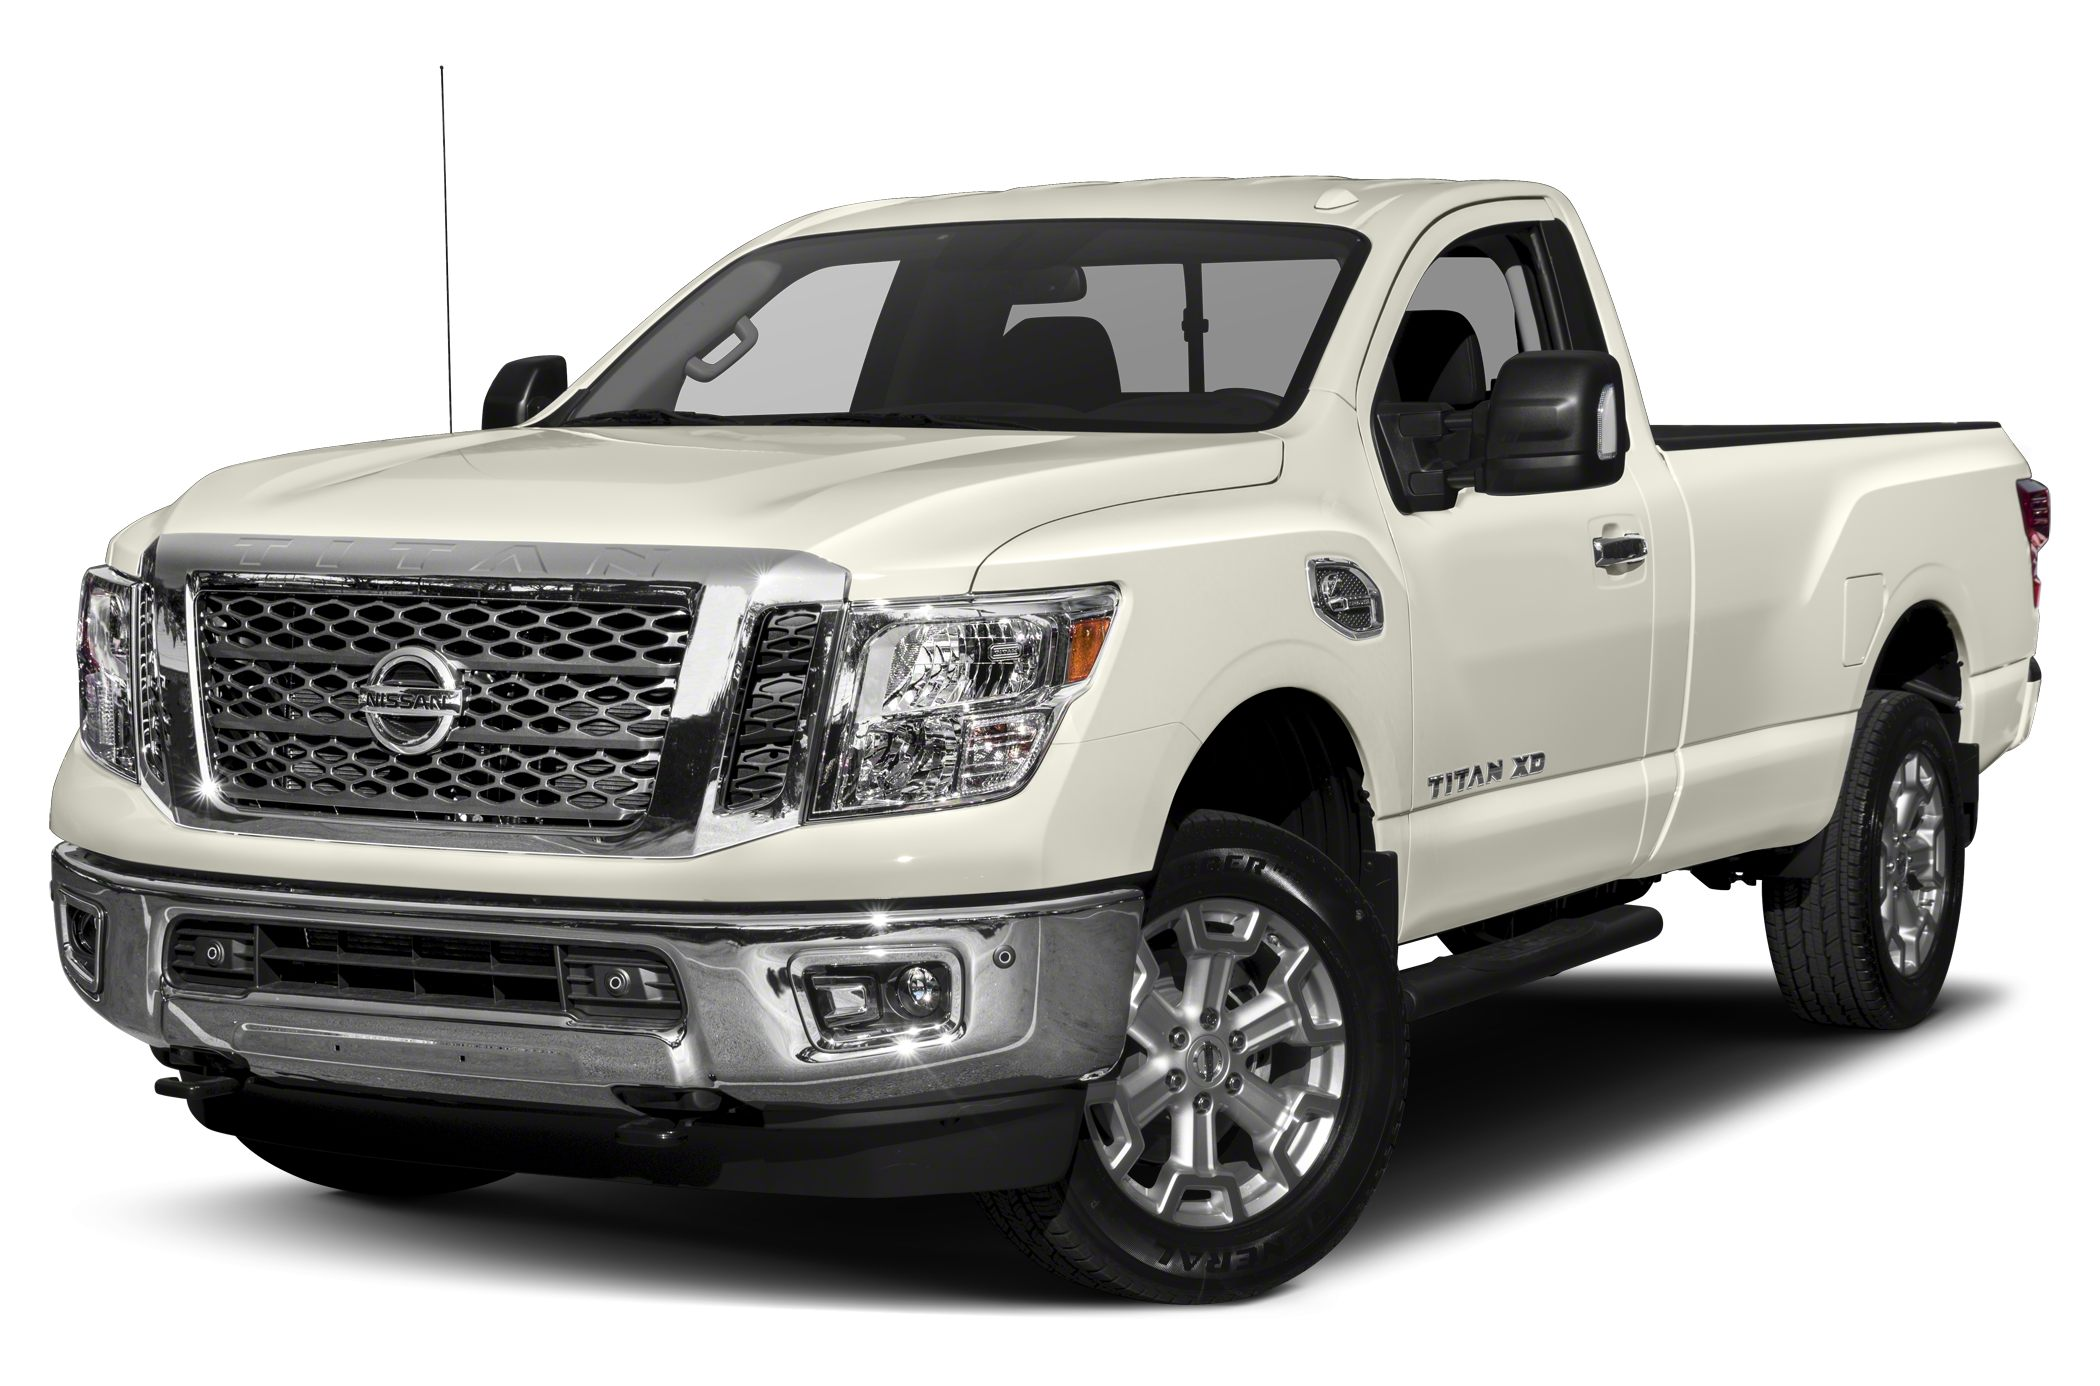 2019 Nissan Titan Xd S Diesel 2dr 4x4 Single Cab 8 Ft Box 139 8 In Wb Pictures